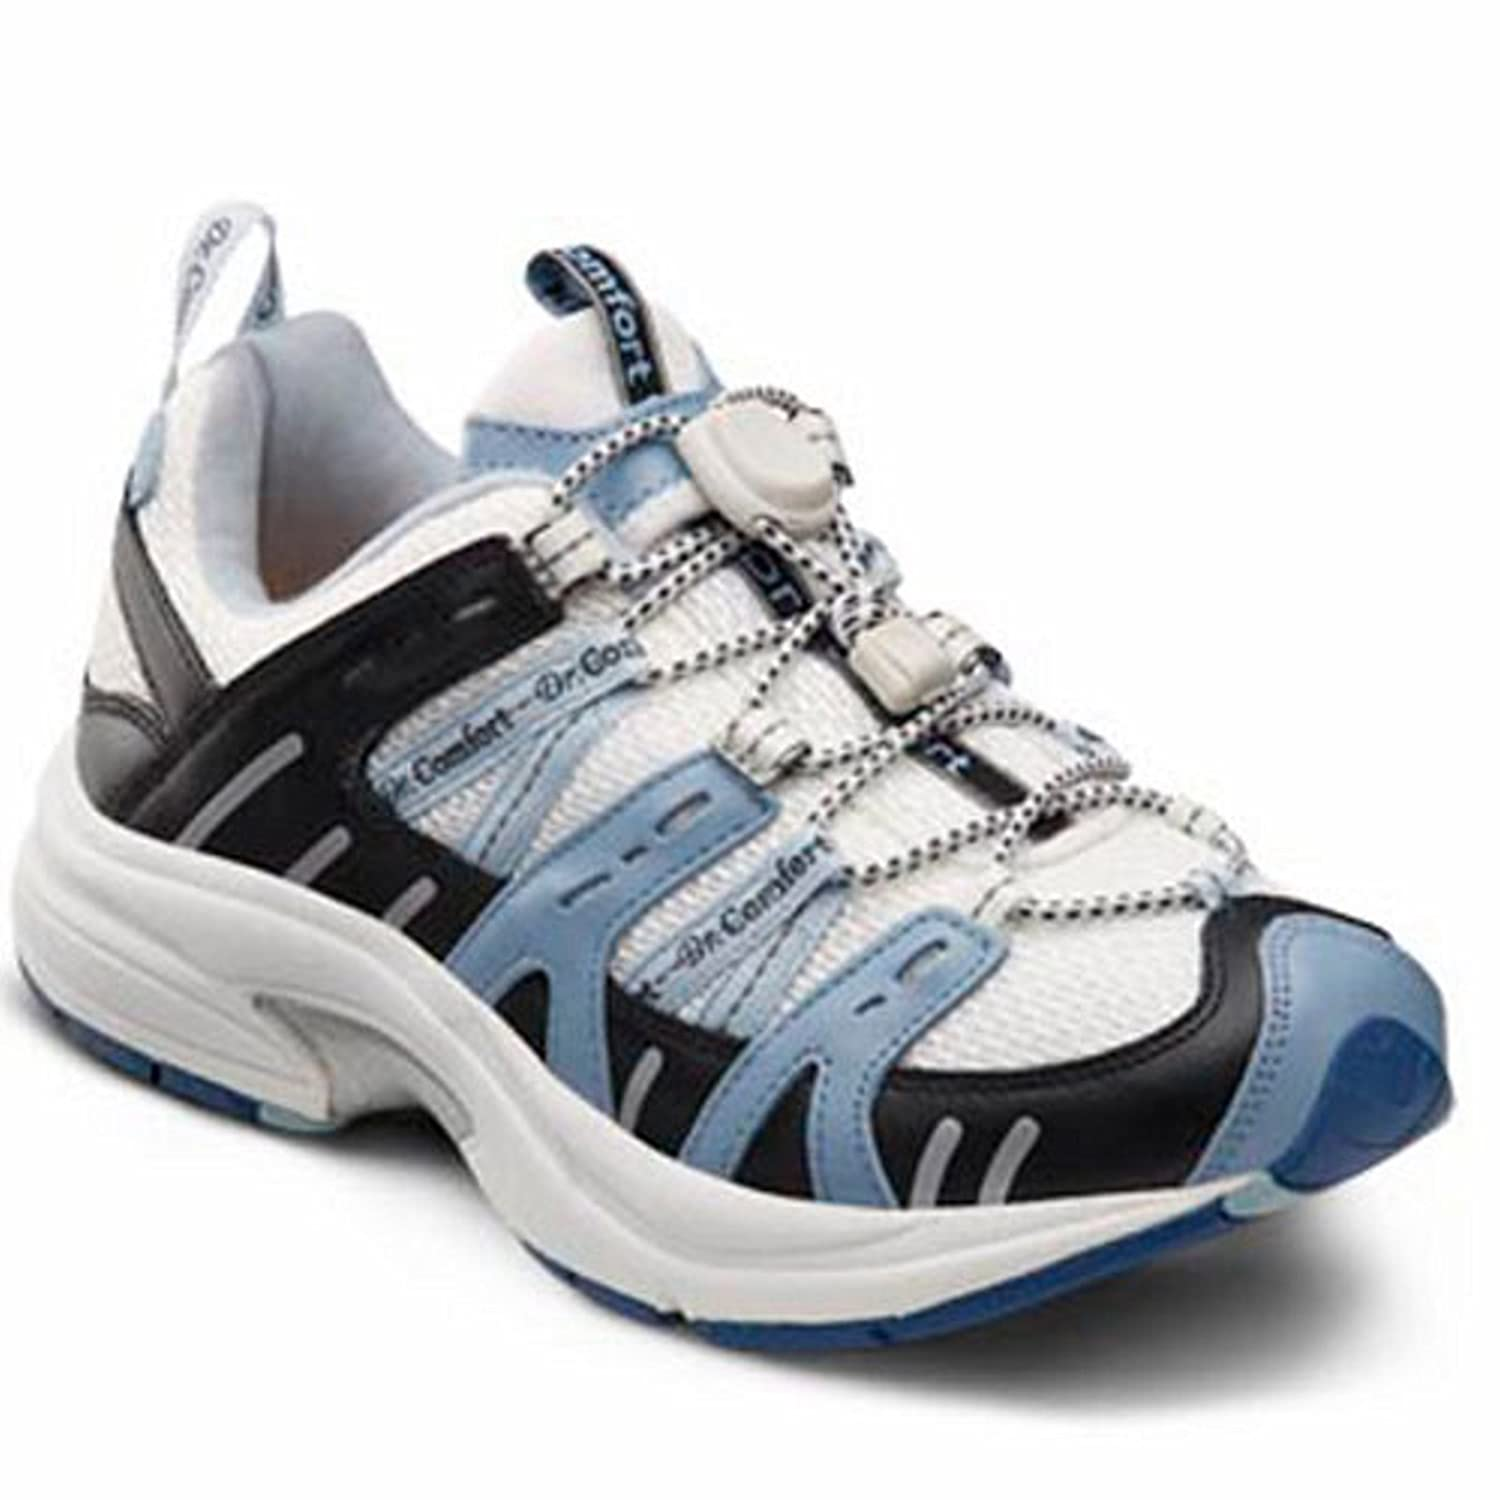 Dr. Comfort Women's Refresh X Blue Diabetic Athletic Shoes B00IO6GG7S -7.0 X-Wide (XW/4E) White/Blue Lace US Woman|White and Blue